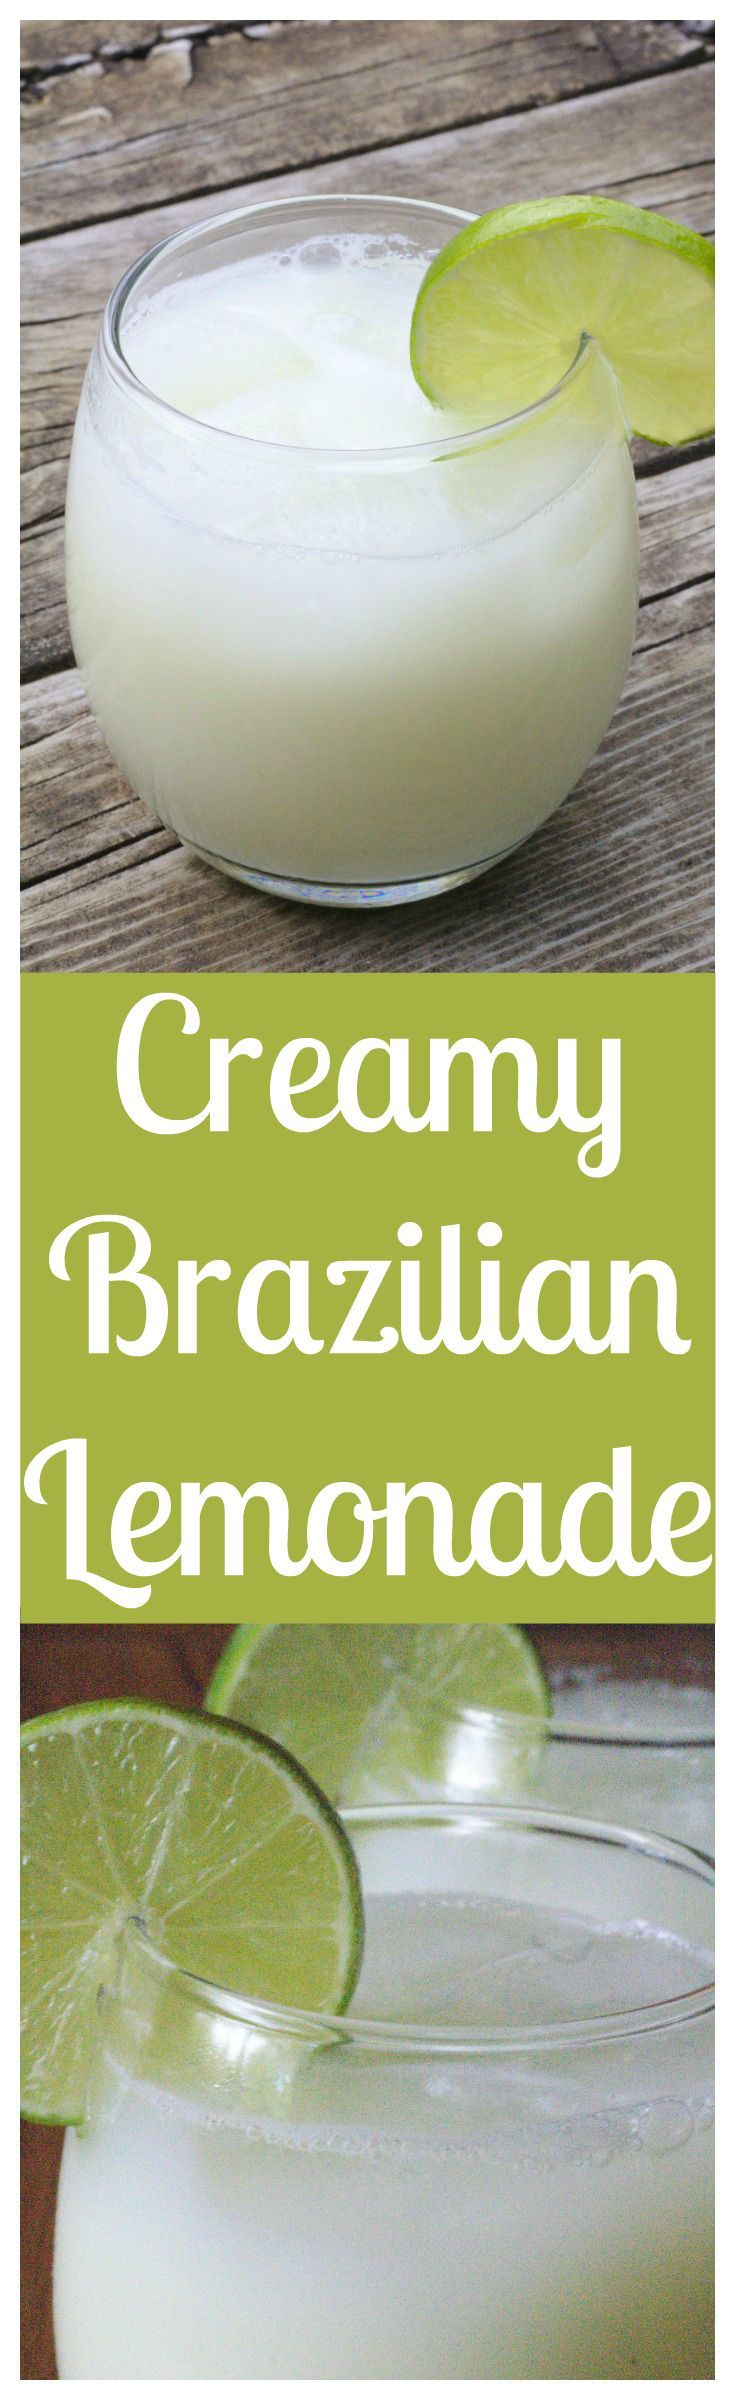 Brazilian Lemonade – A creamy and refreshing drink made with fresh limes, sweetened condensed milk, and sugar! Simple to make and delicious!